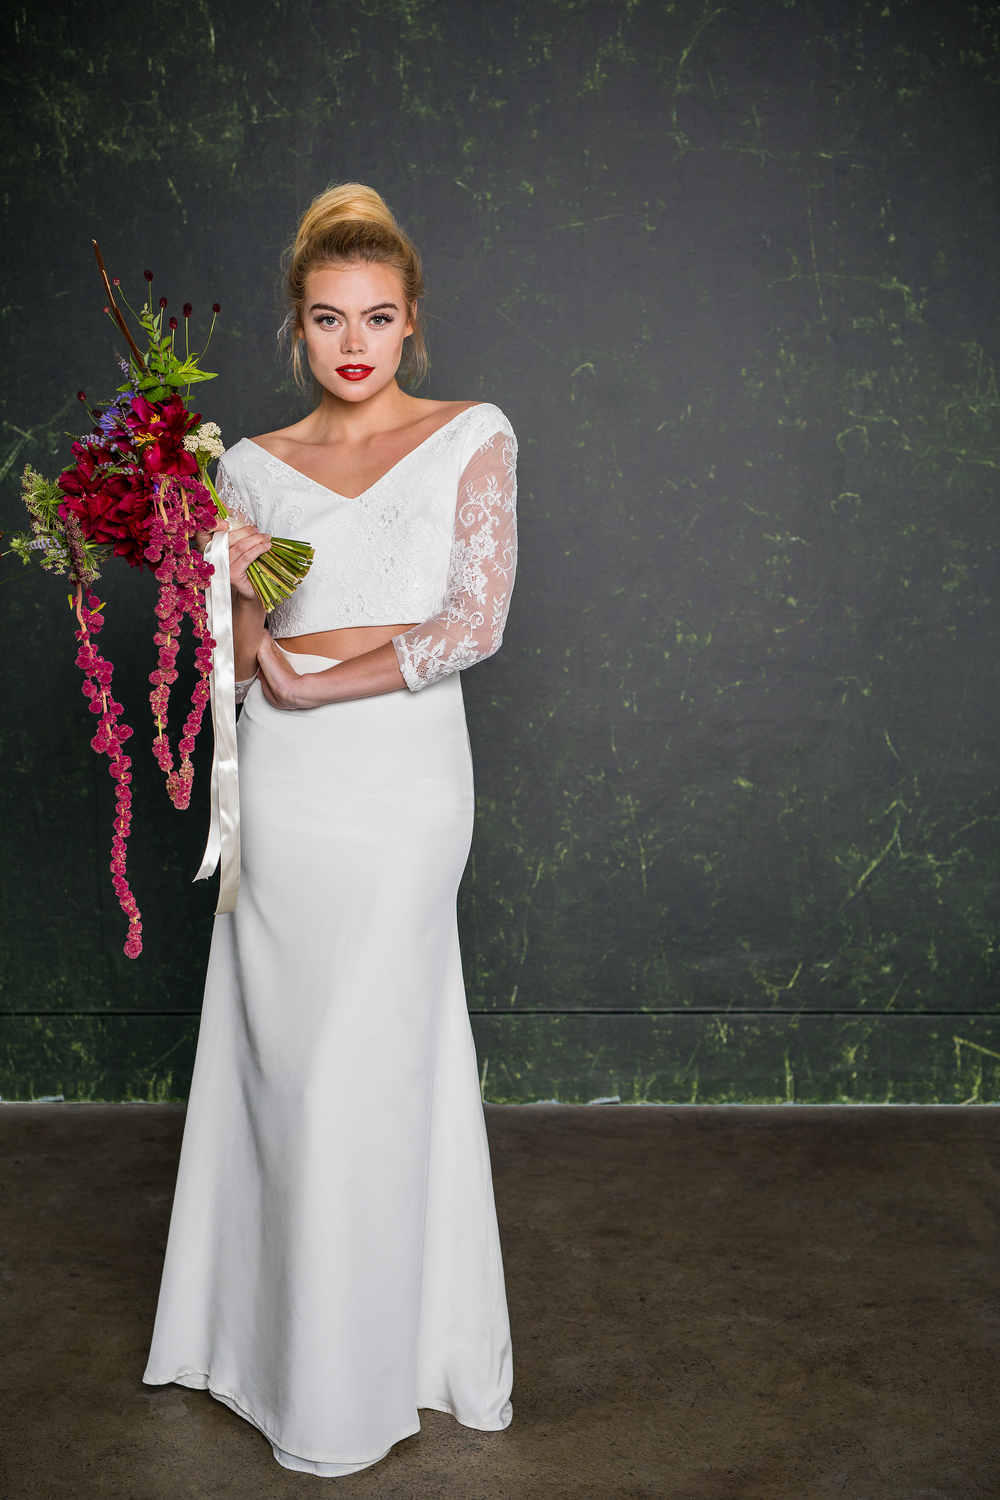 f29ff92f83b The skirt was inspired by a stunning bride of Ollichon who envisioned it.